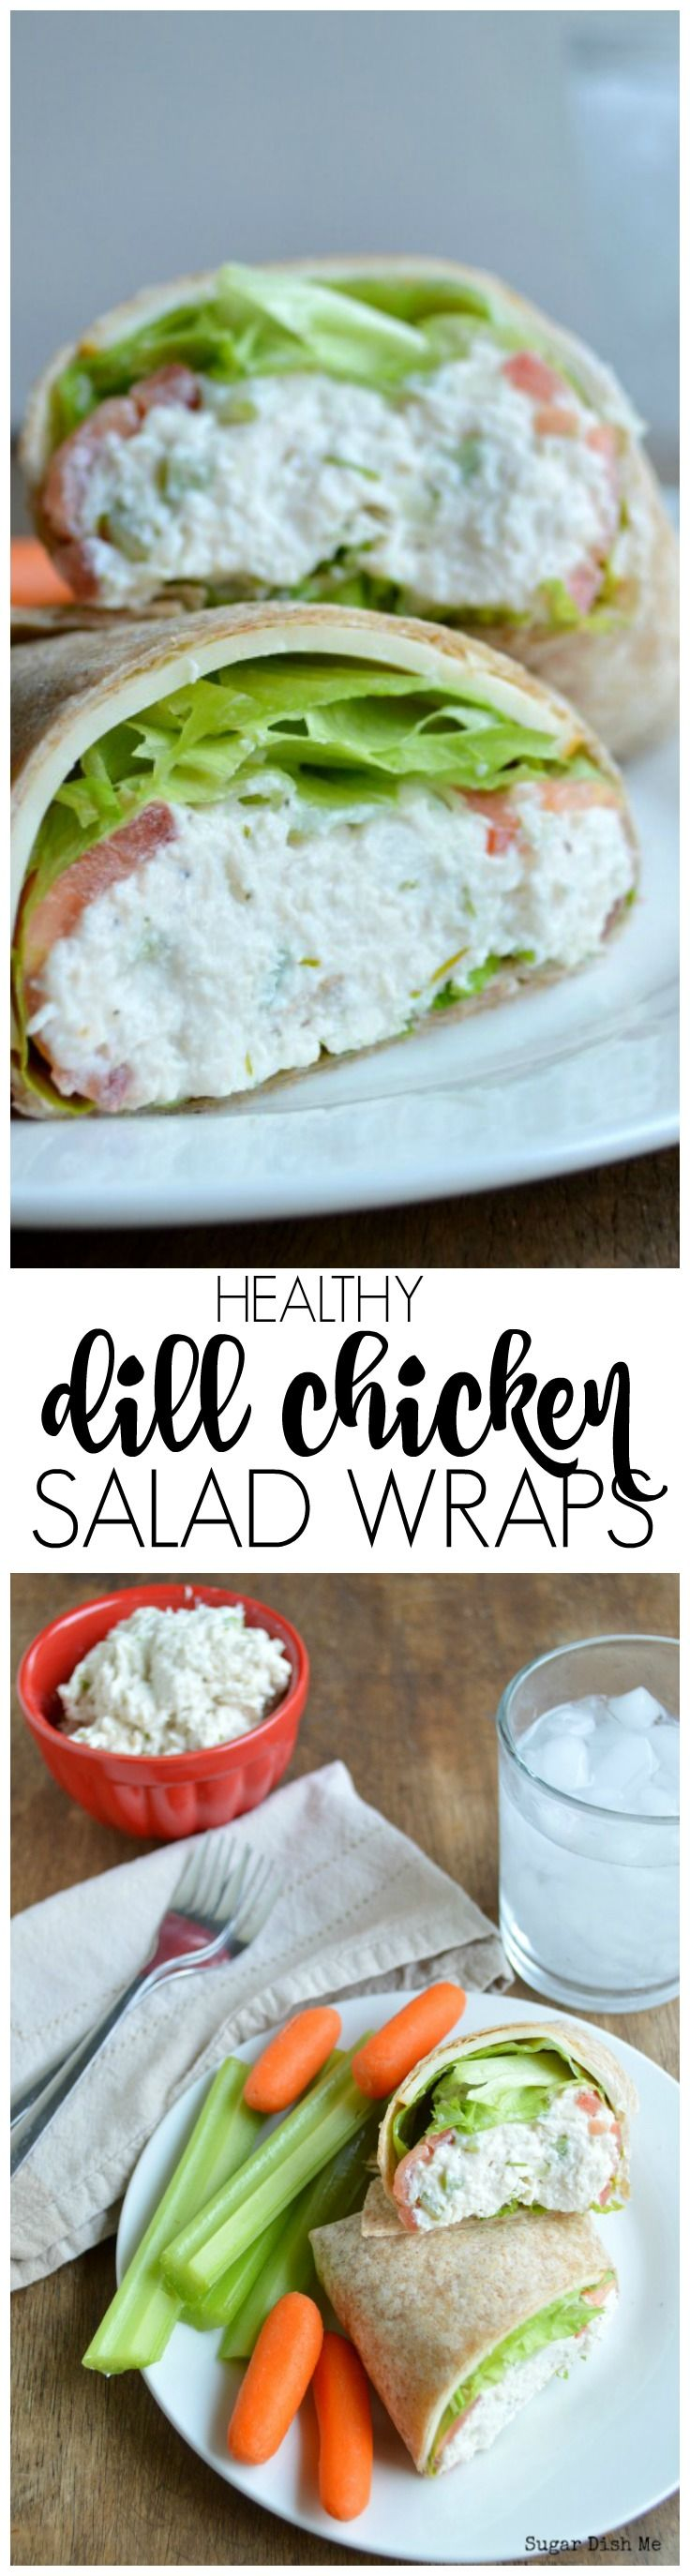 Healthy Dill Chicken Salad Wraps are made with Greek yogurt for extra protein and lots of flavor!